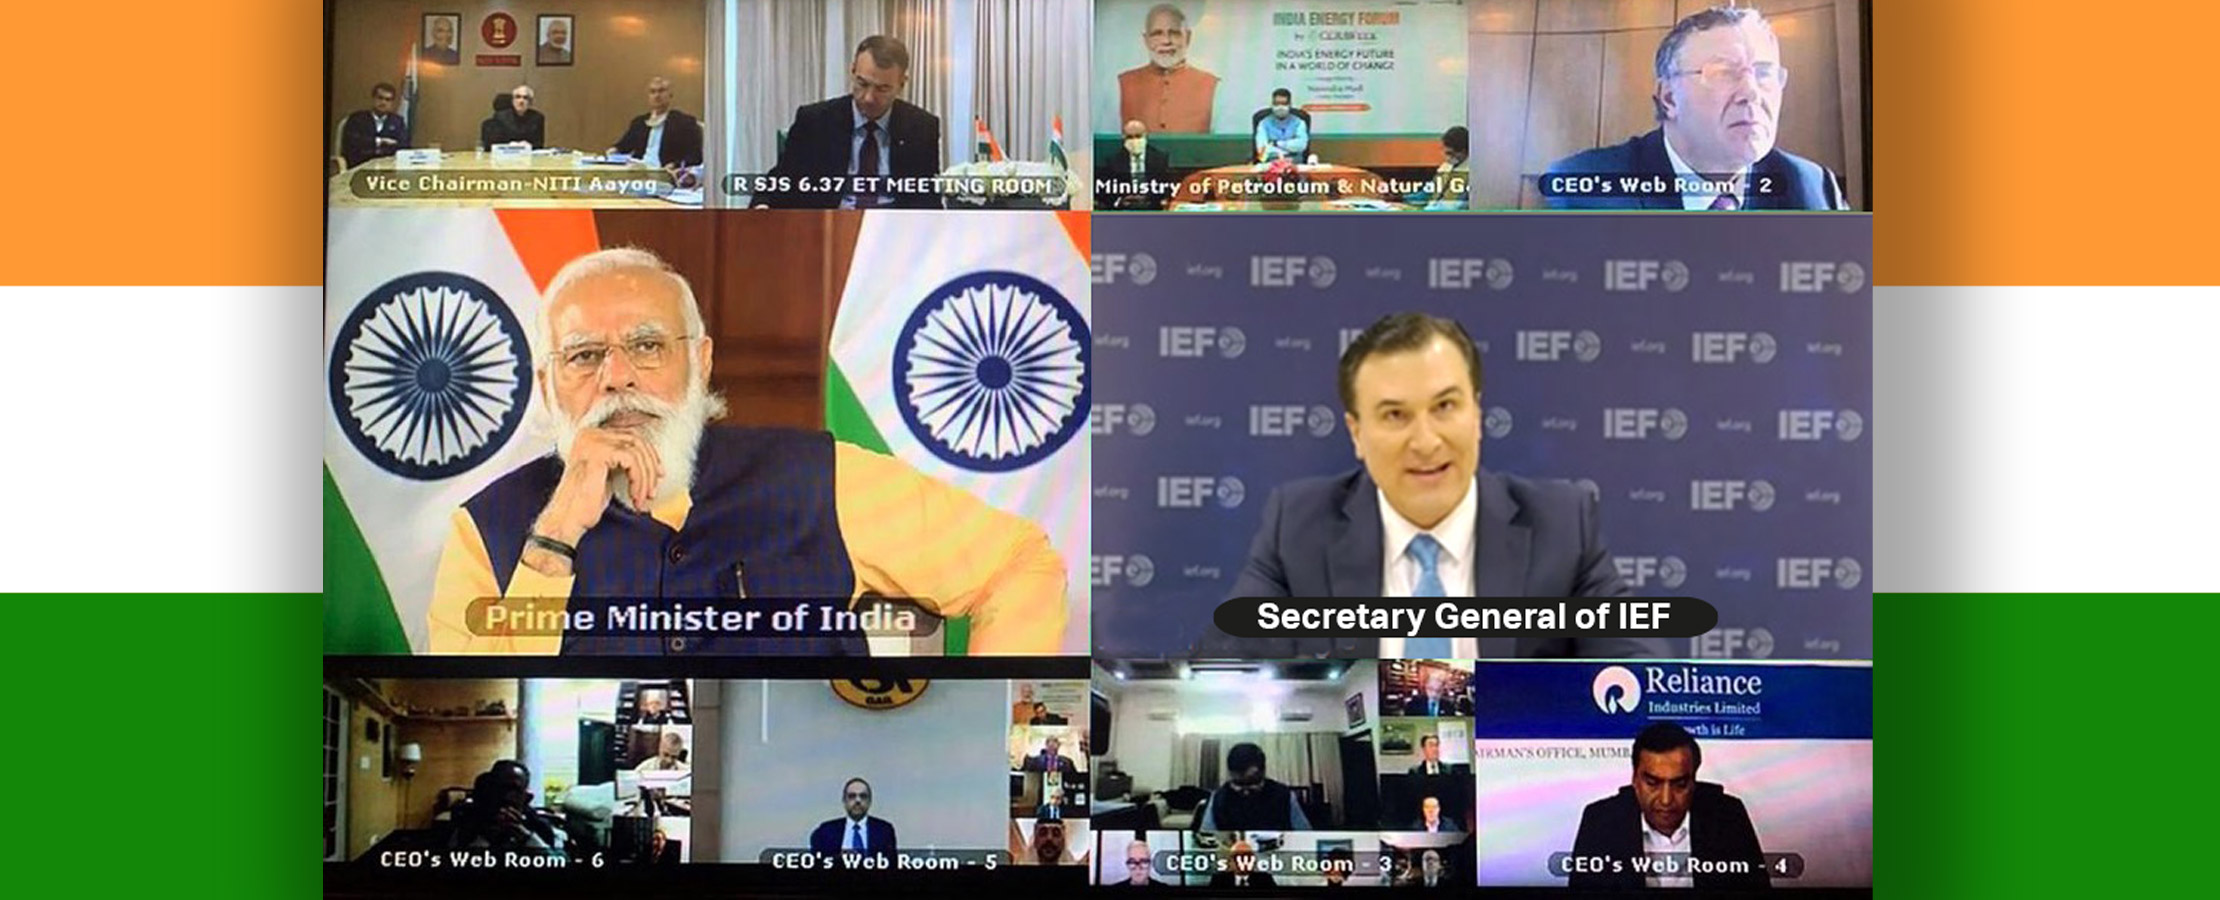 Secretary General Participates in India Energy Forum Global CEO Roundtable with Prime Minister Modi